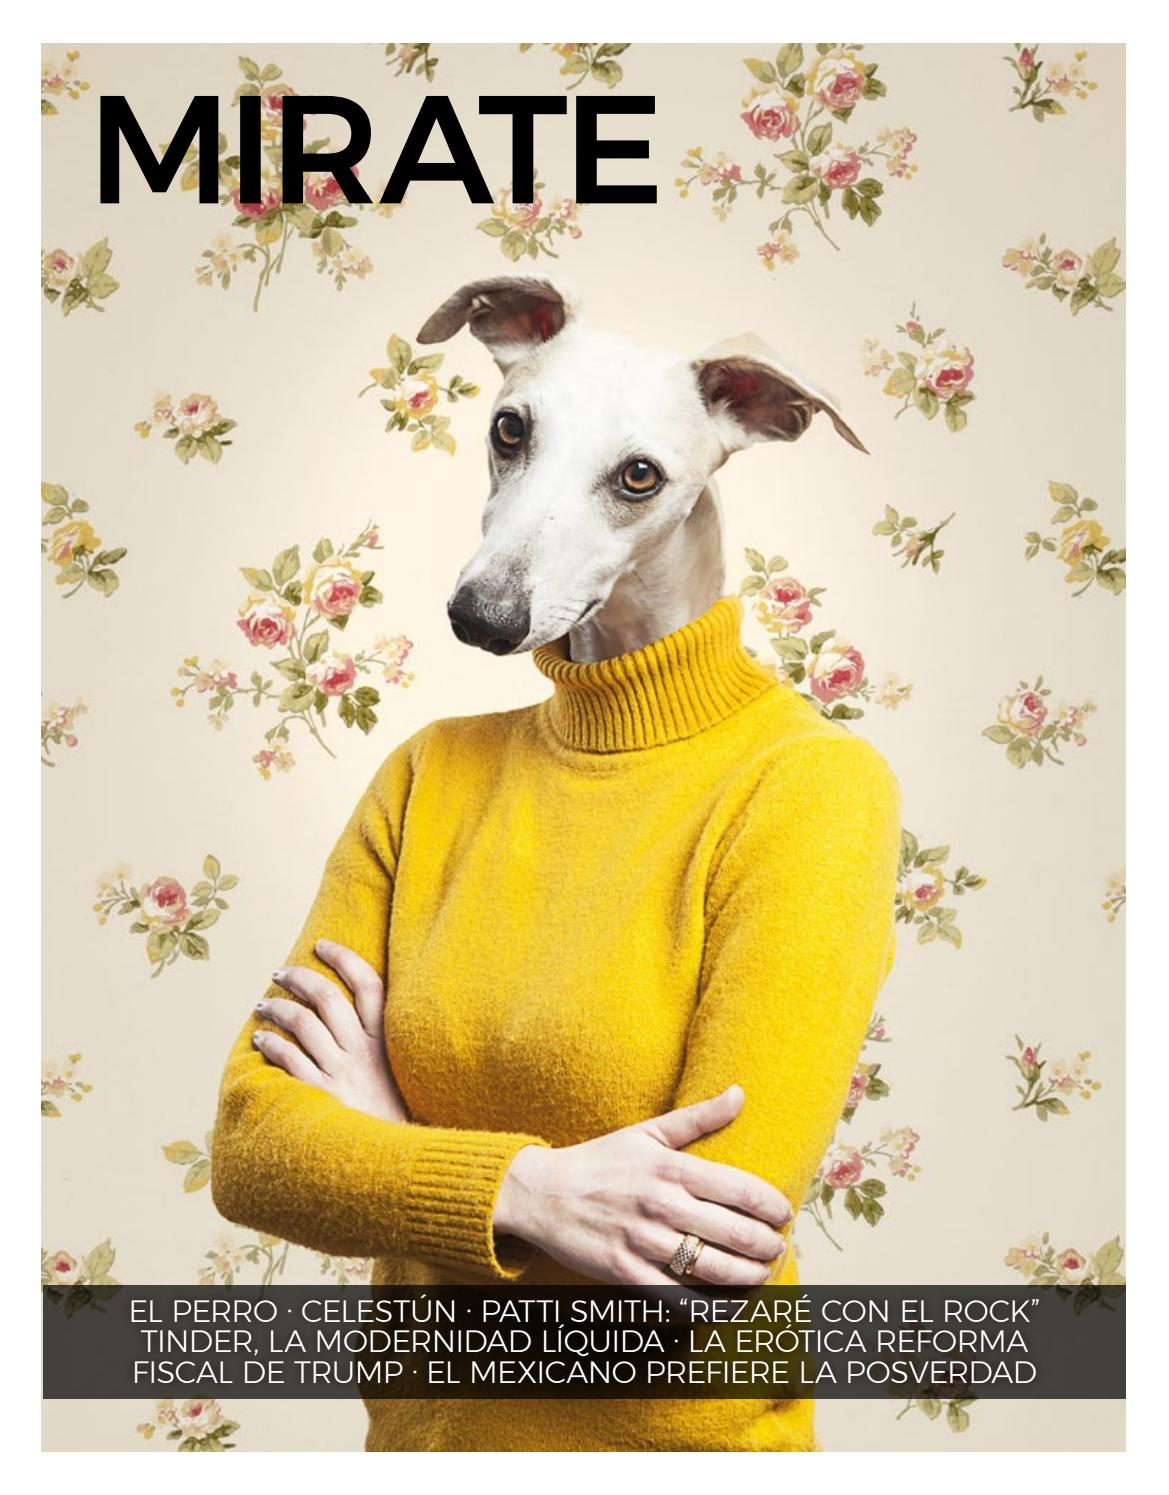 Revista Mirate No 21 by Revista Mirate - issuu